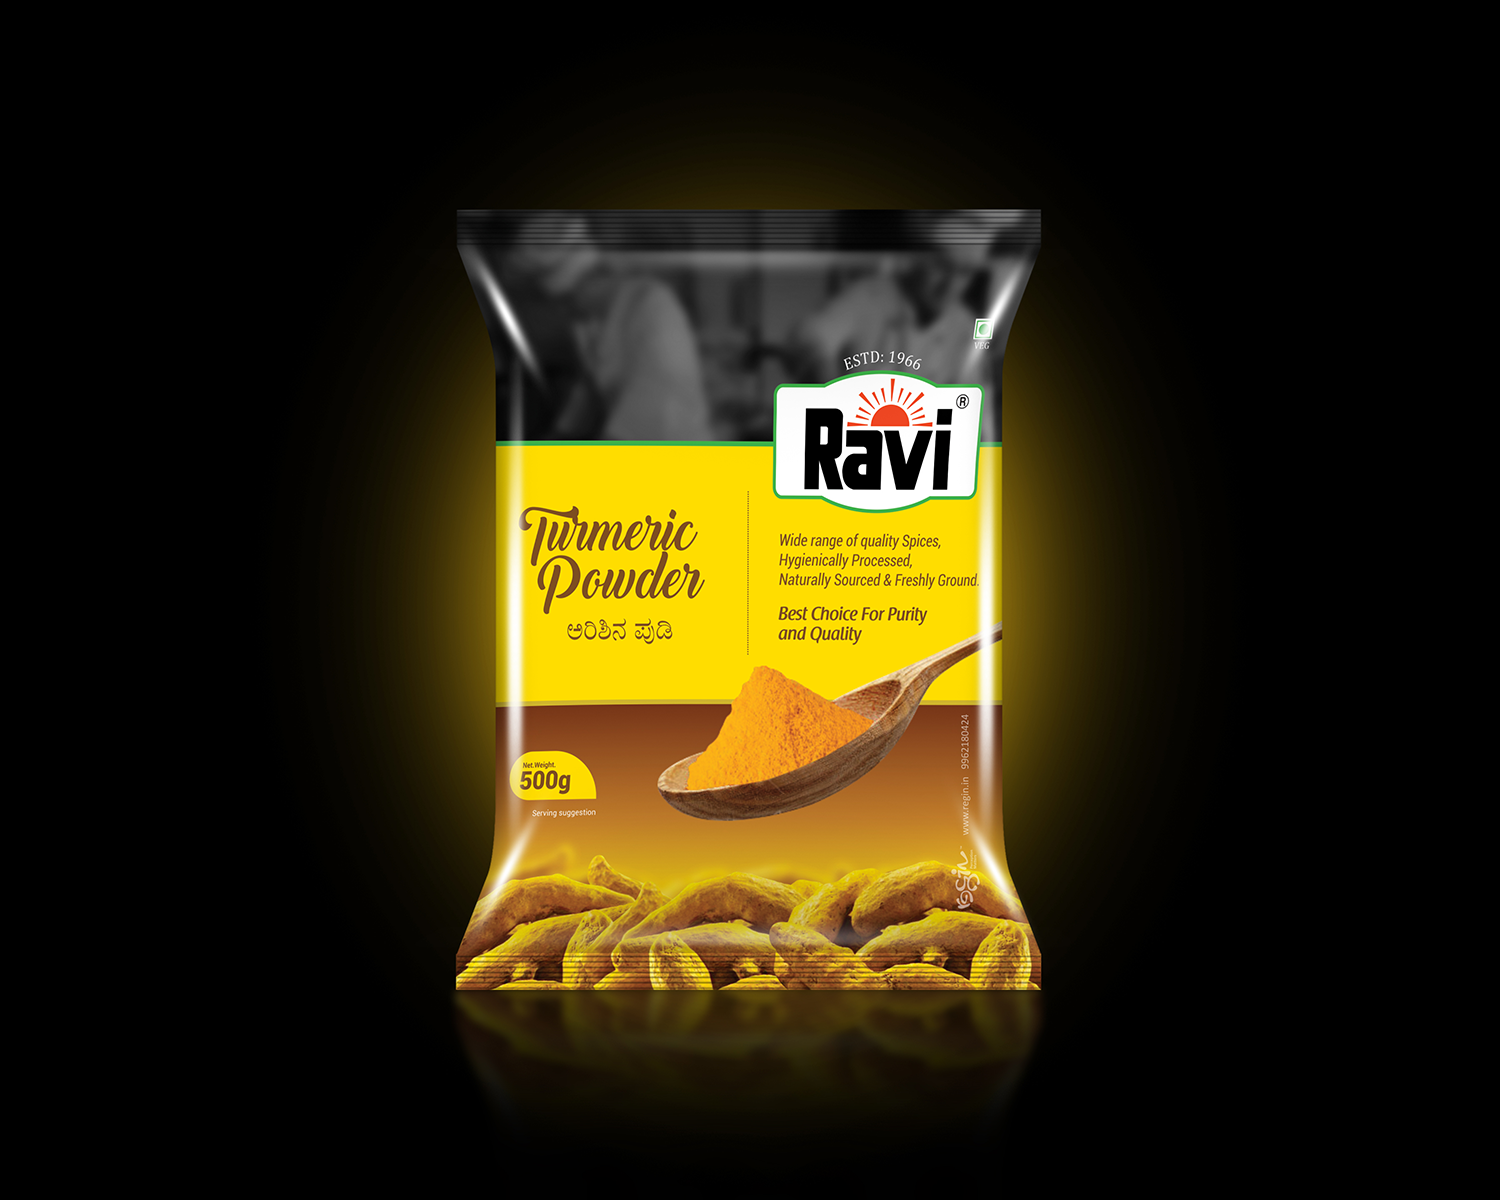 Ravi Spices Packaging | Regin in